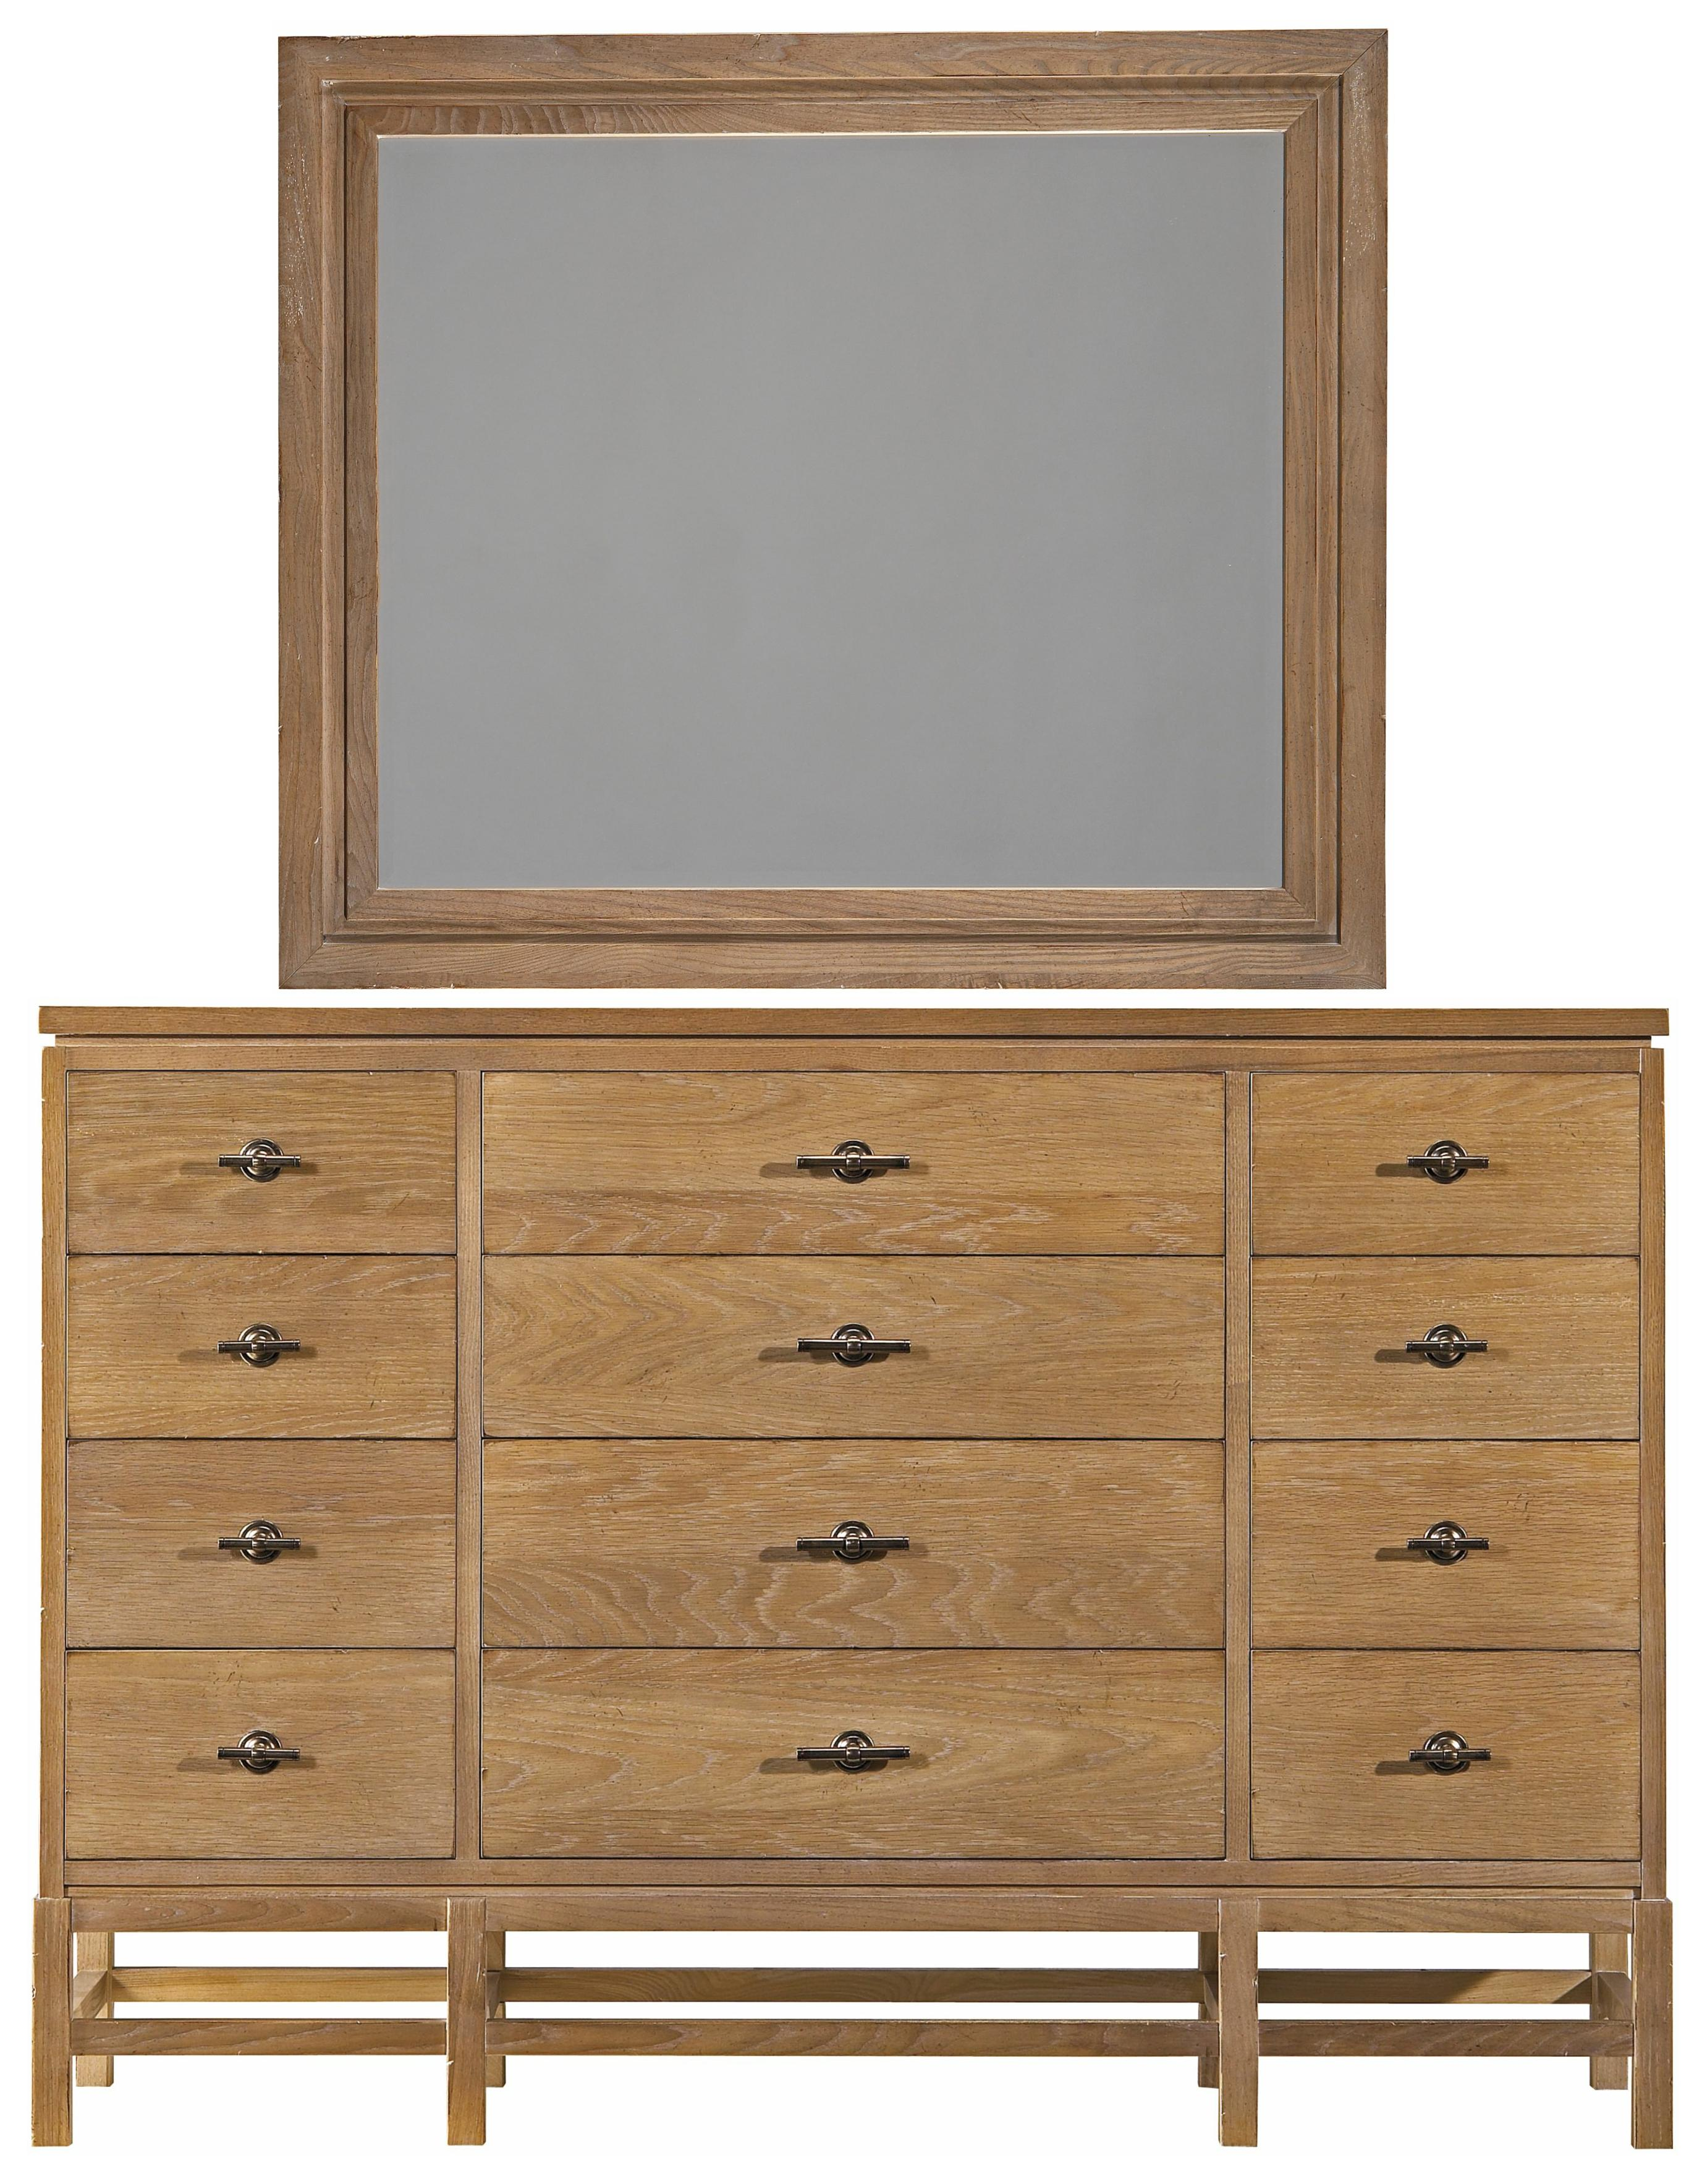 Stanley Furniture Coastal Living Resort Tranquility Isle Dresser & Day's End Mirror - Item Number: 062-63-06+31